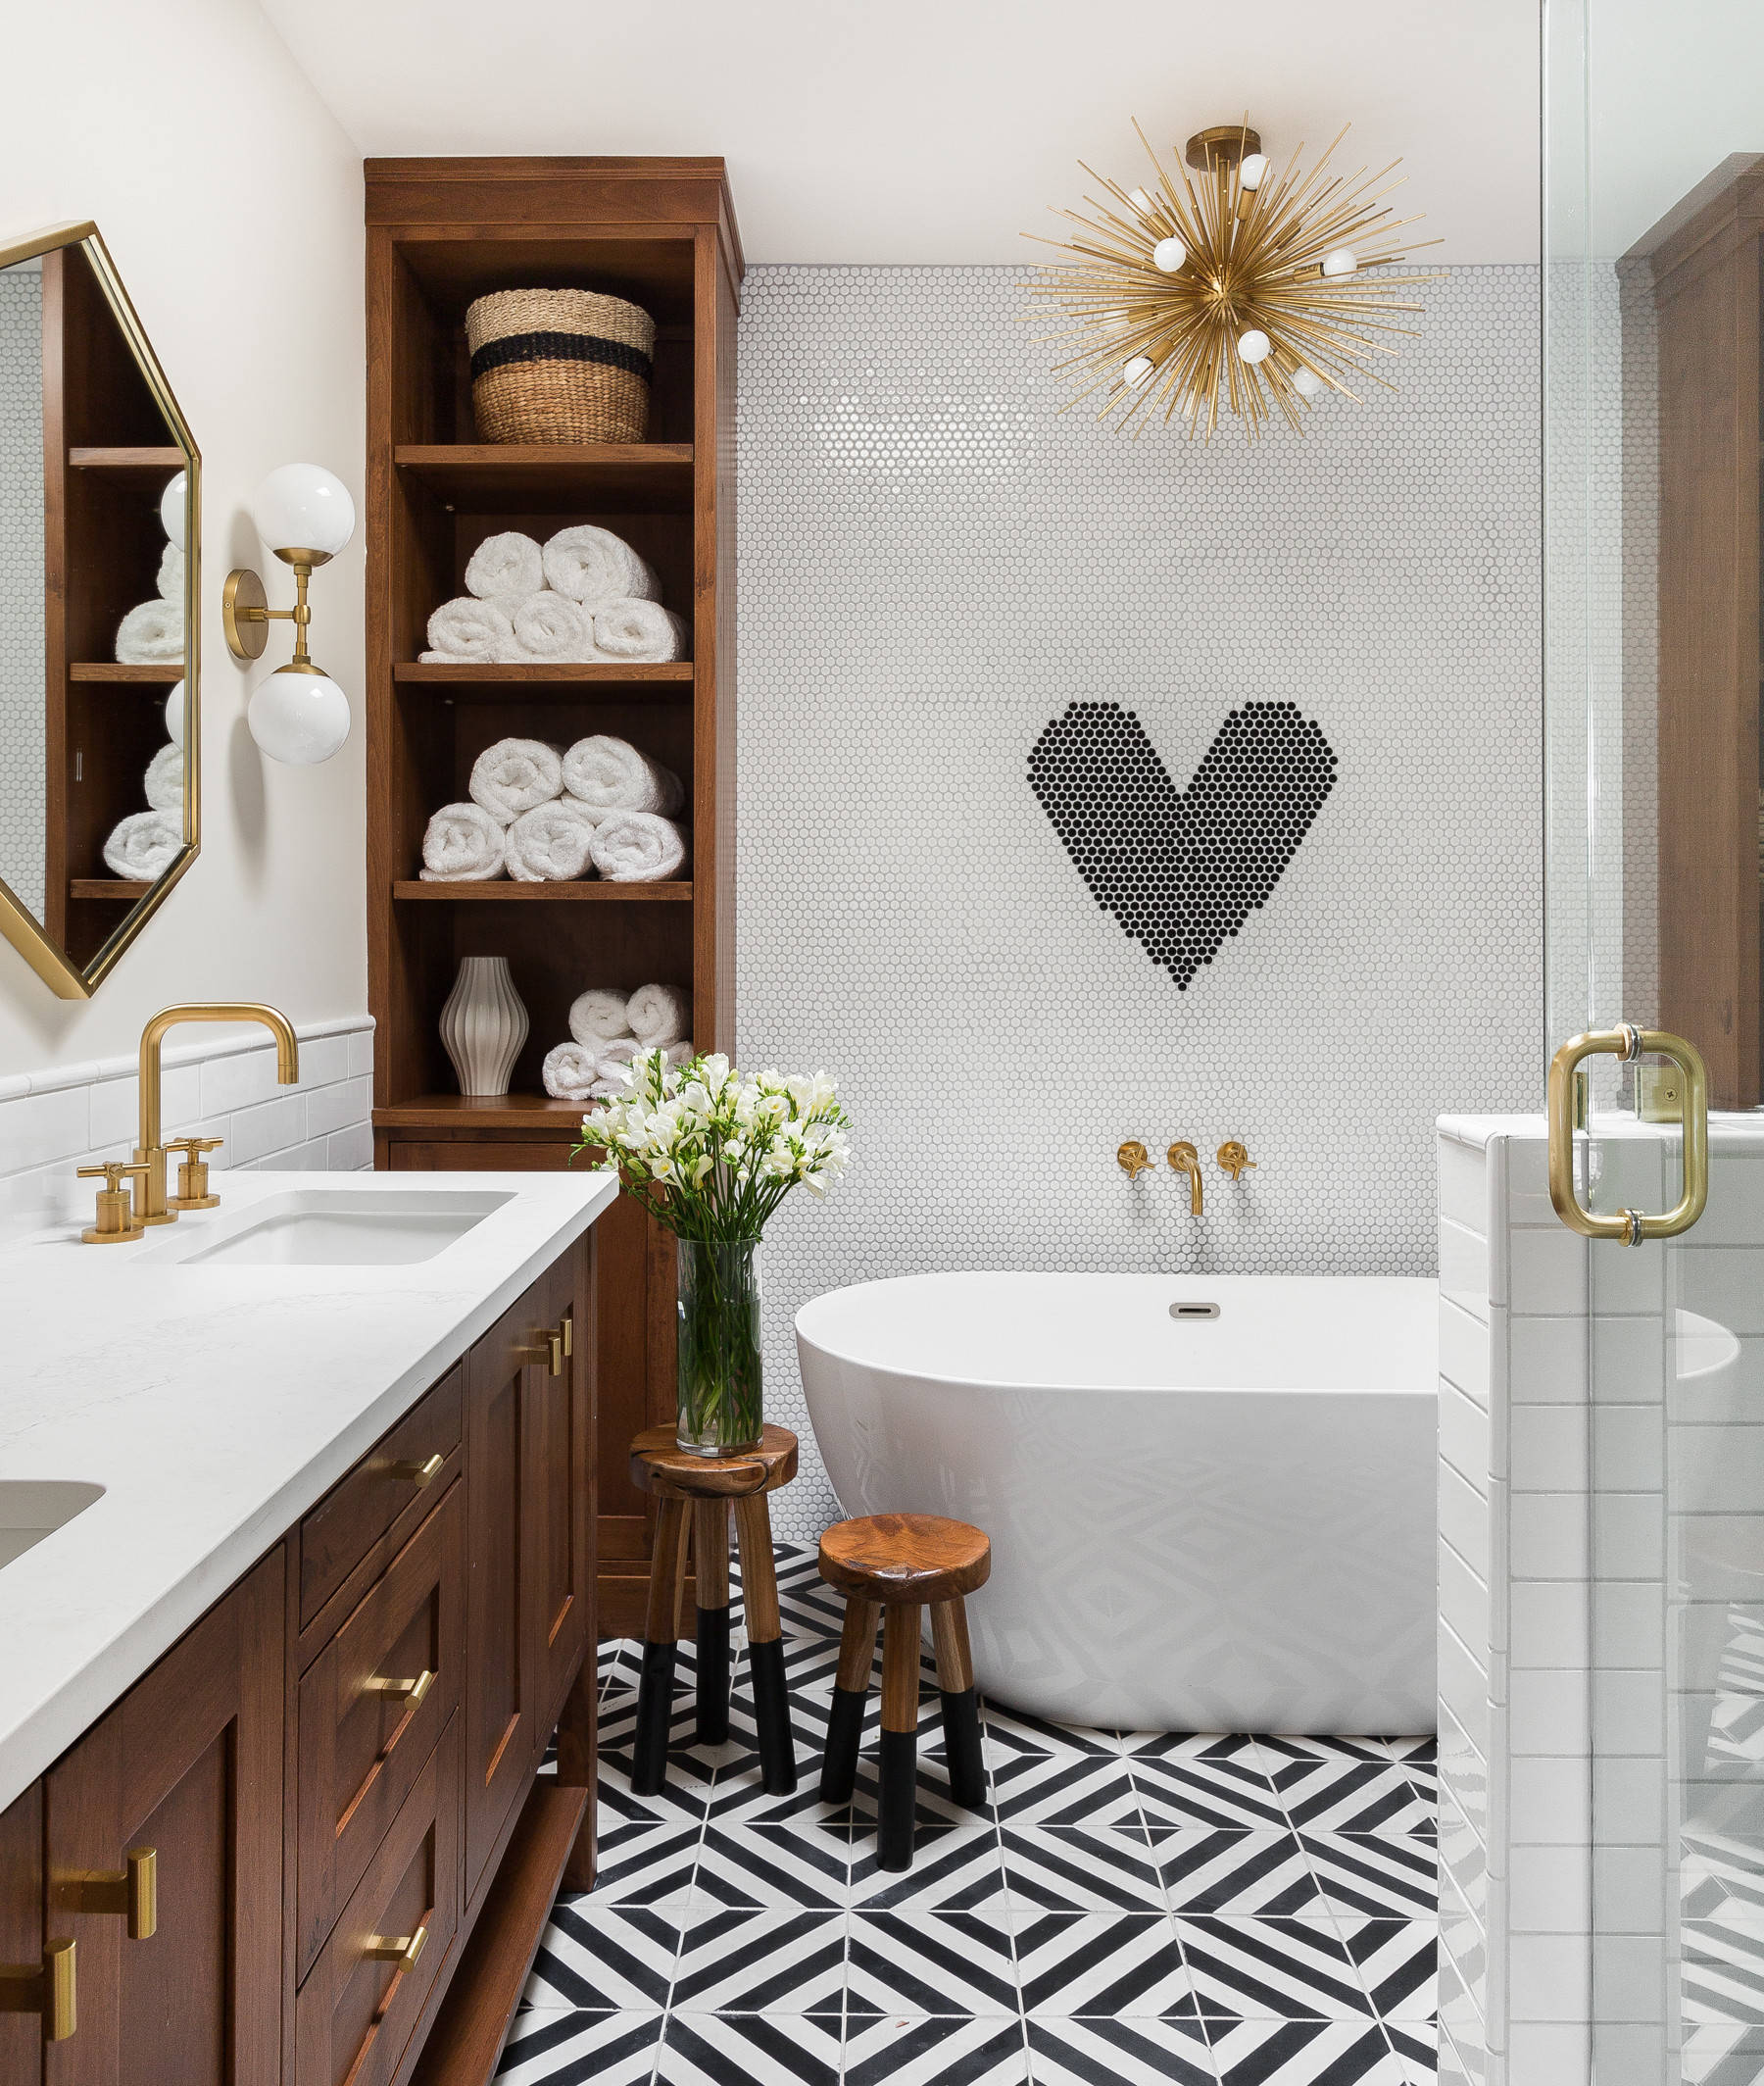 75 Black And White Tile Bathroom Ideas, Black And White Bathroom Floor Tile Ideas